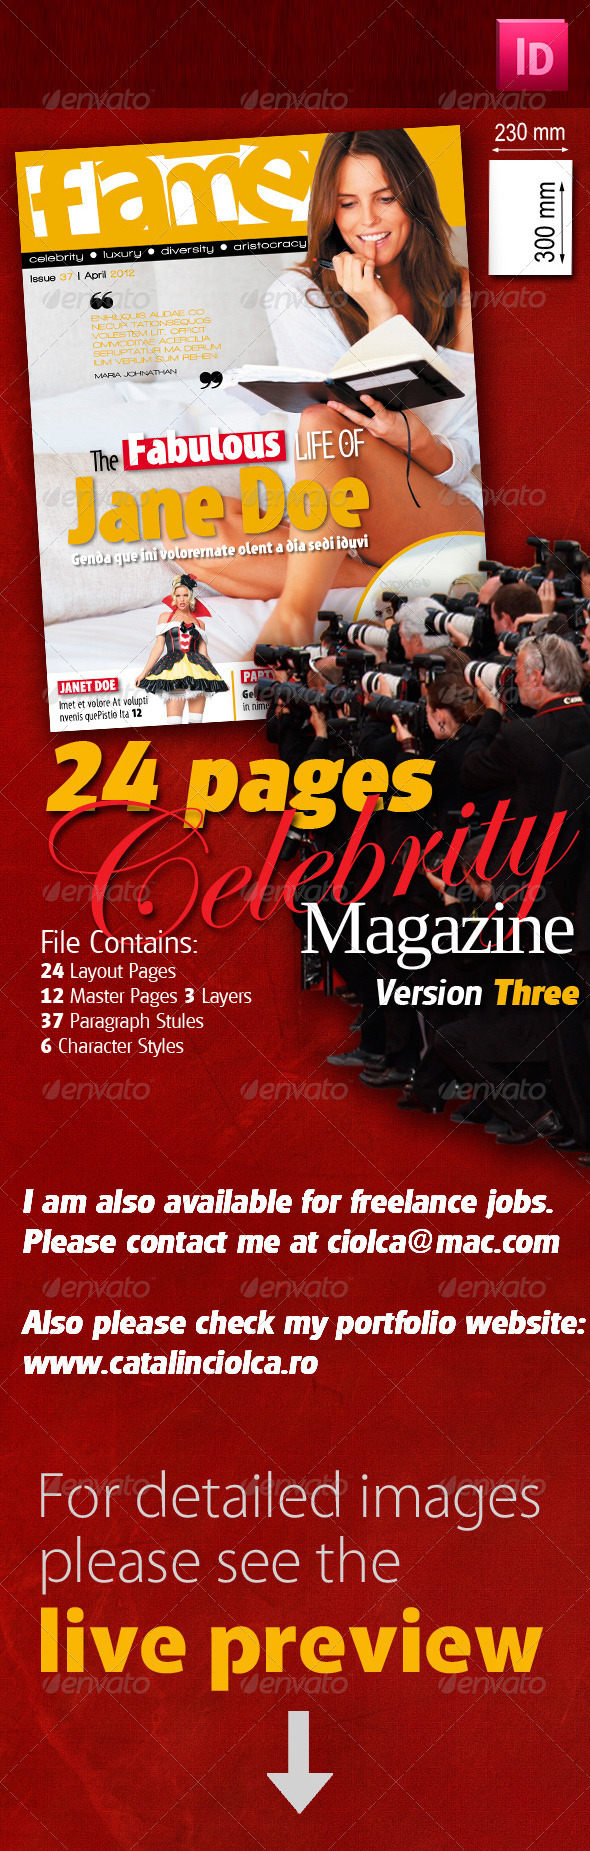 24 Pages Celebrity Magazine Version Three - Magazines Print Templates